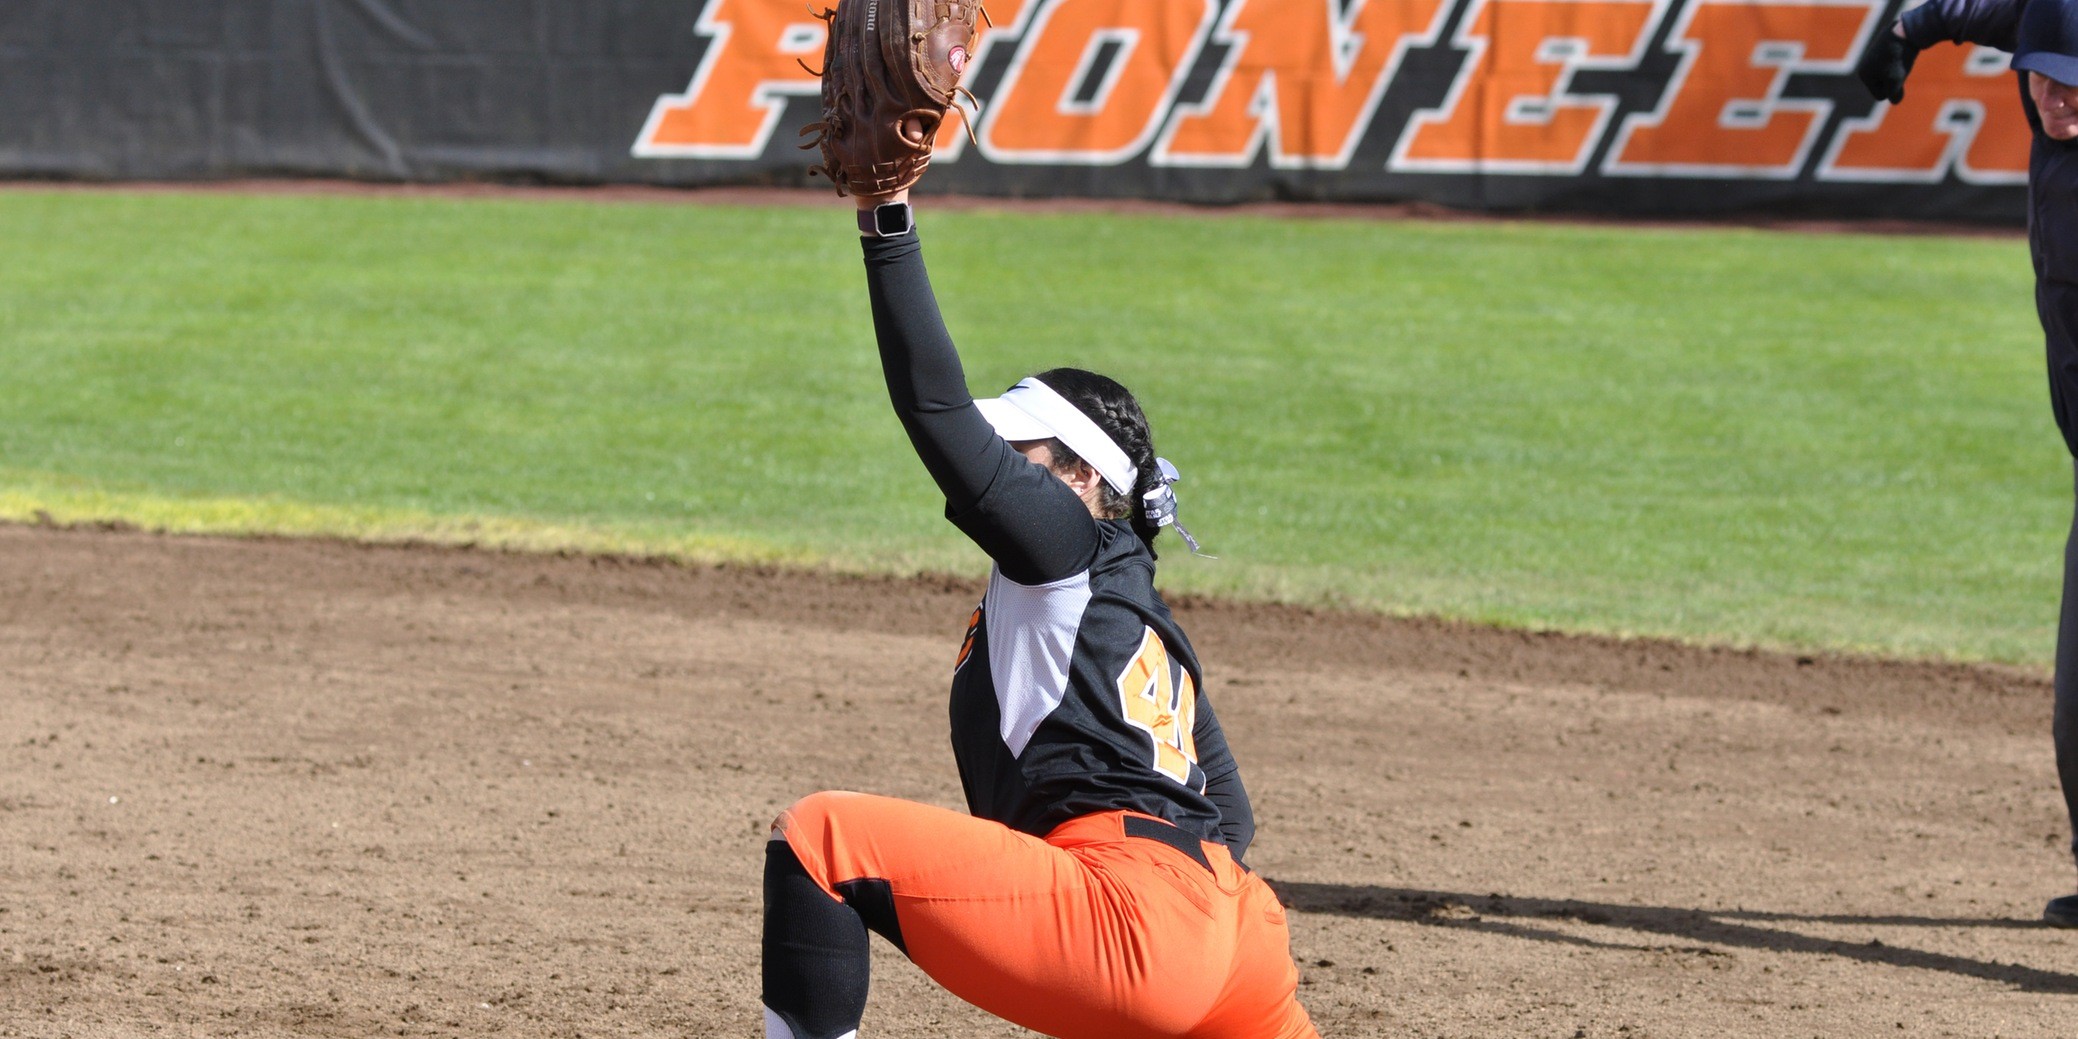 Lewis & Clark's home-field debut soured by pair of losses to PLU